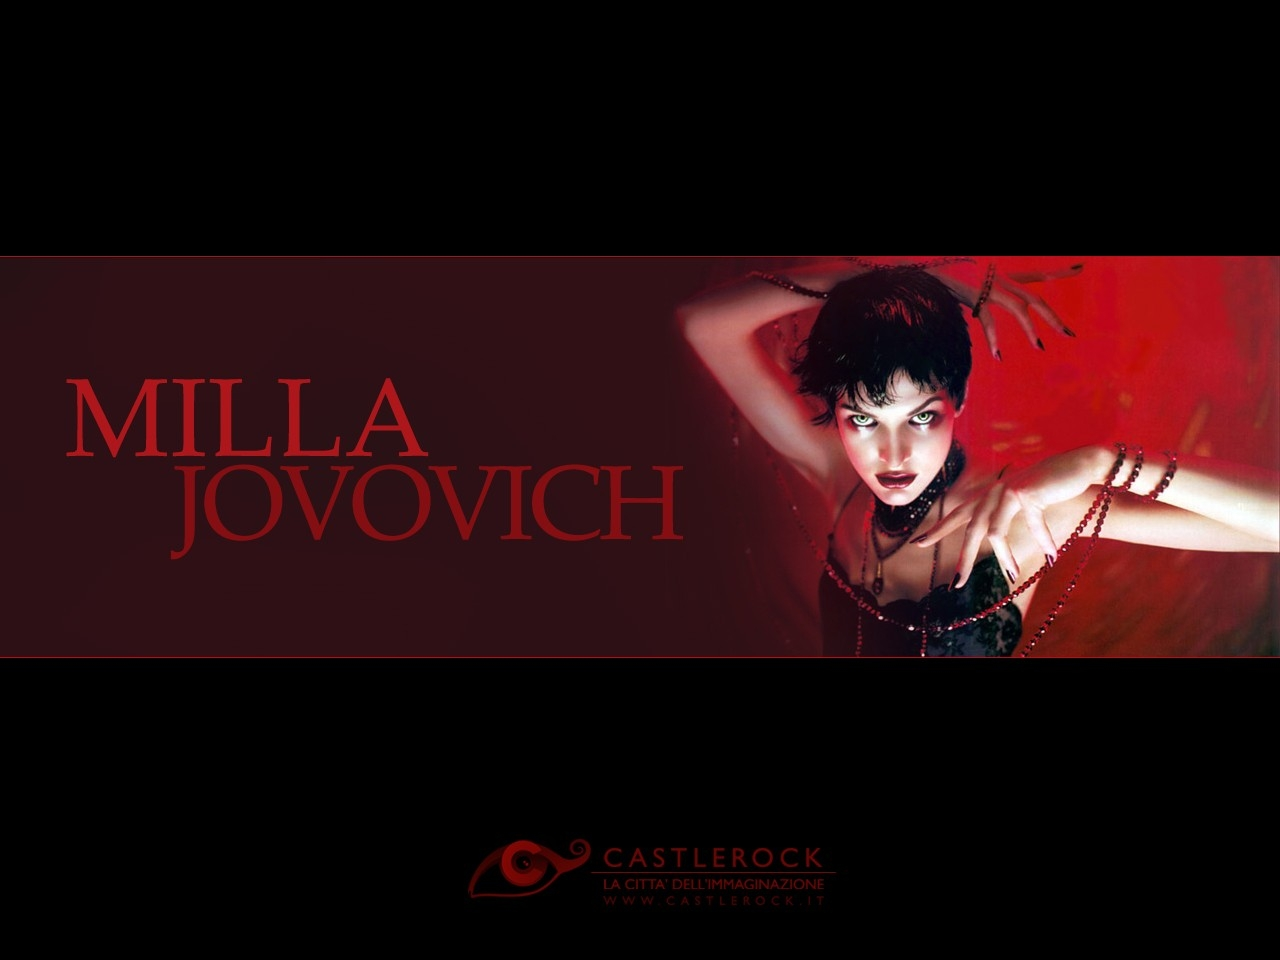 Wallpaper di Milla Jovovich